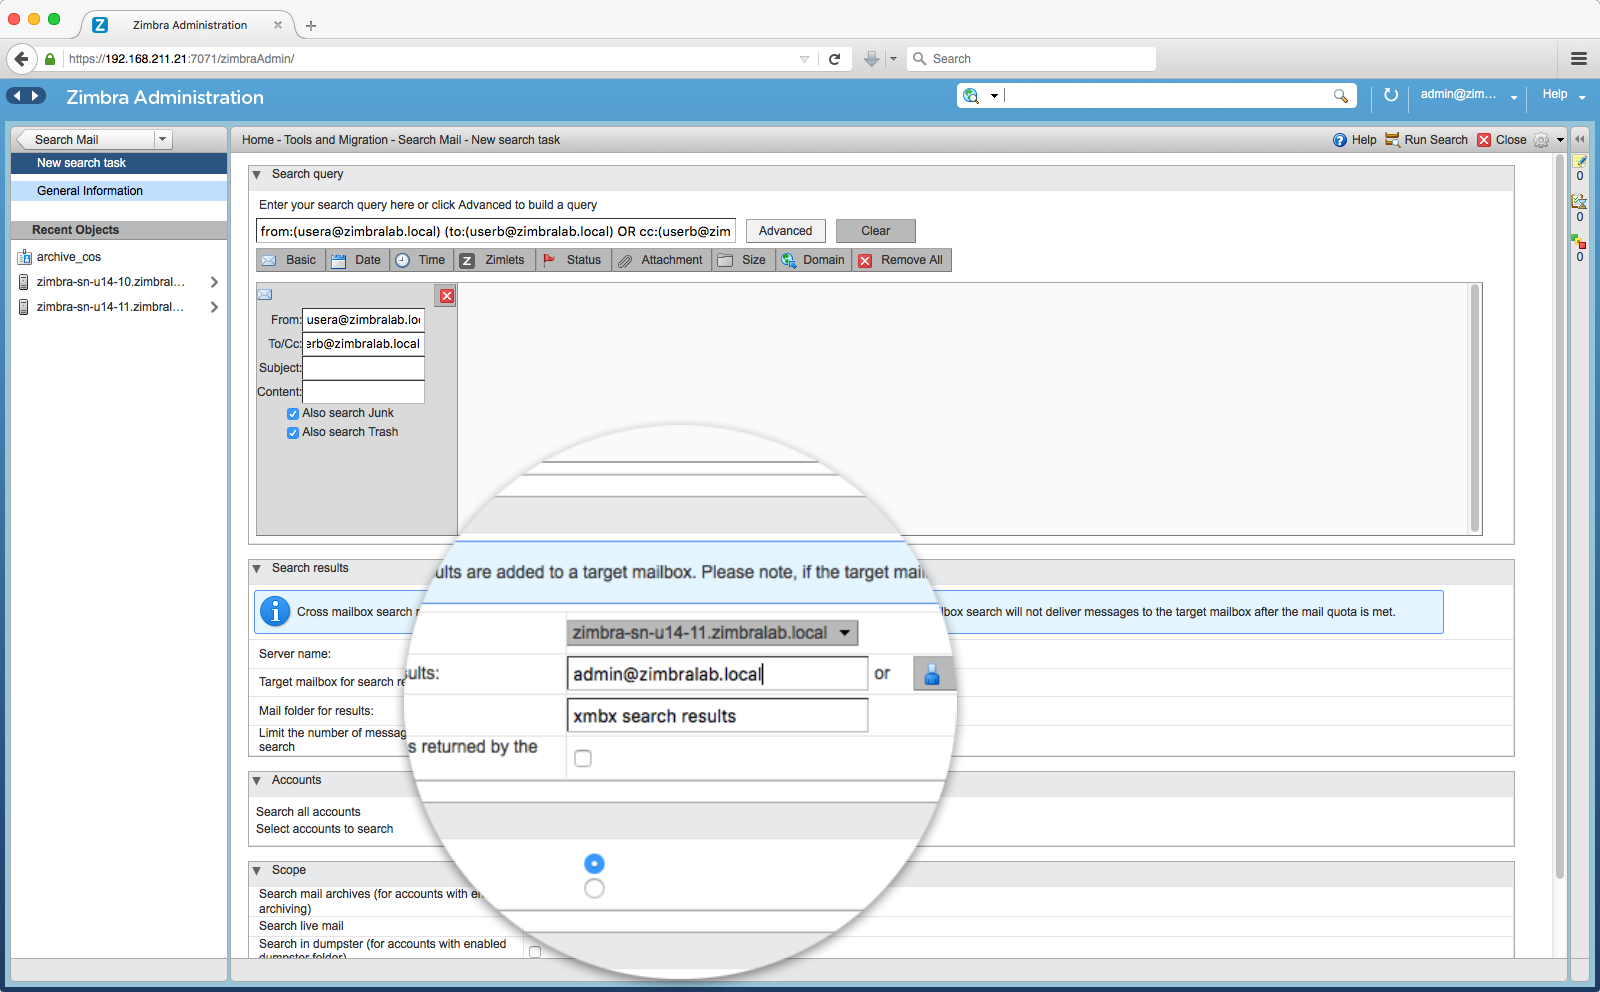 Zimbra Email Archiving and Discovery